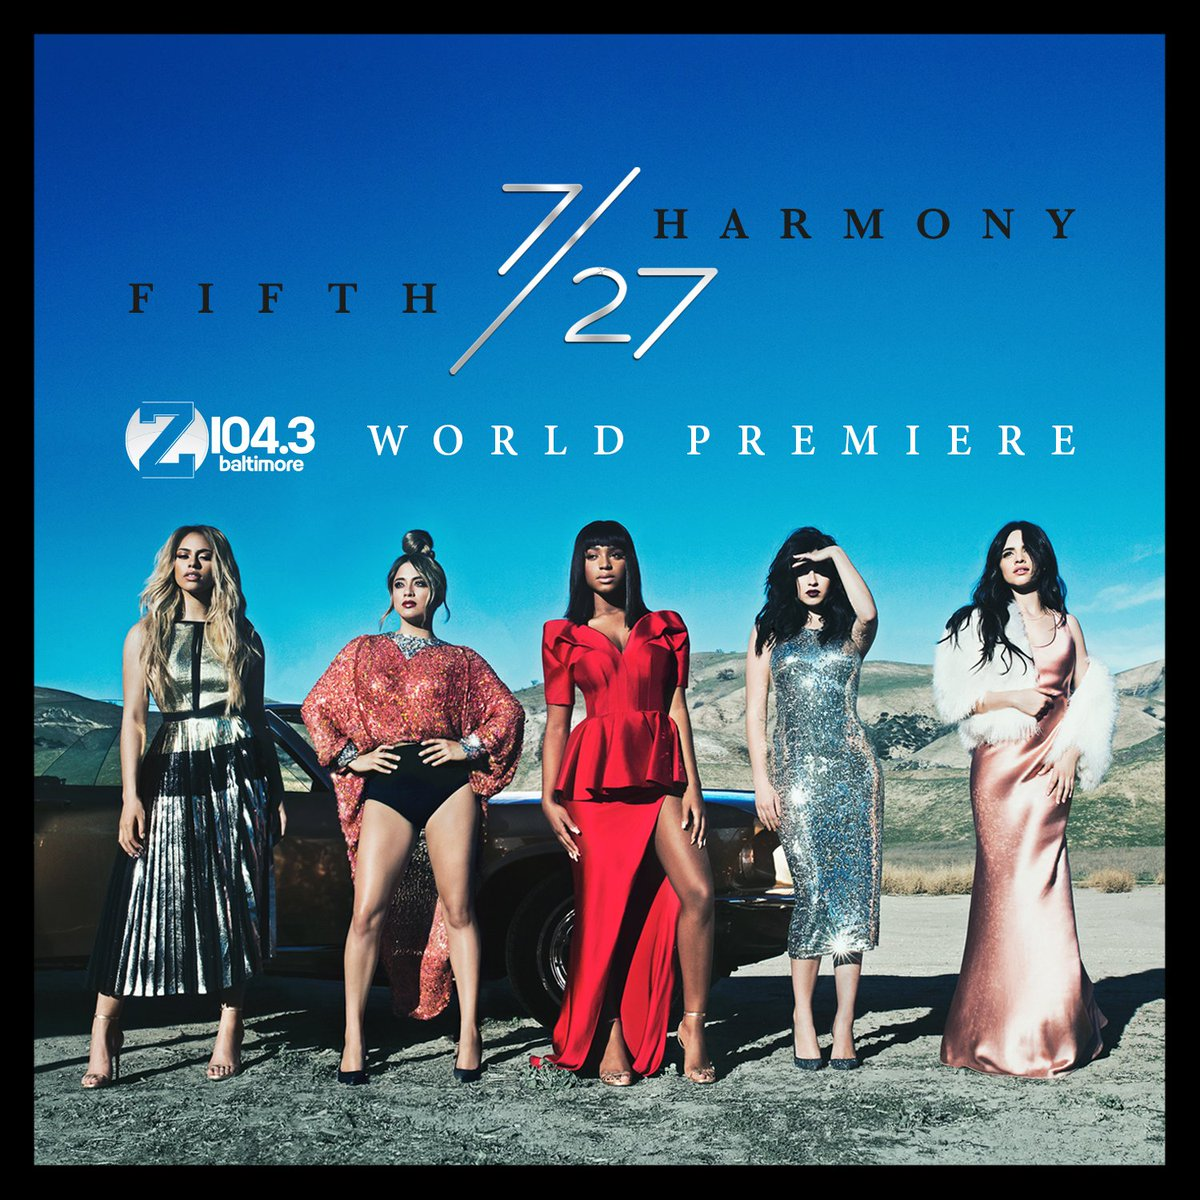 Brace yourself #Harmonizers! Hear BRAND NEW @FifthHarmony music first thing tomorrow with @Kaneshow at 7:05 on Z!